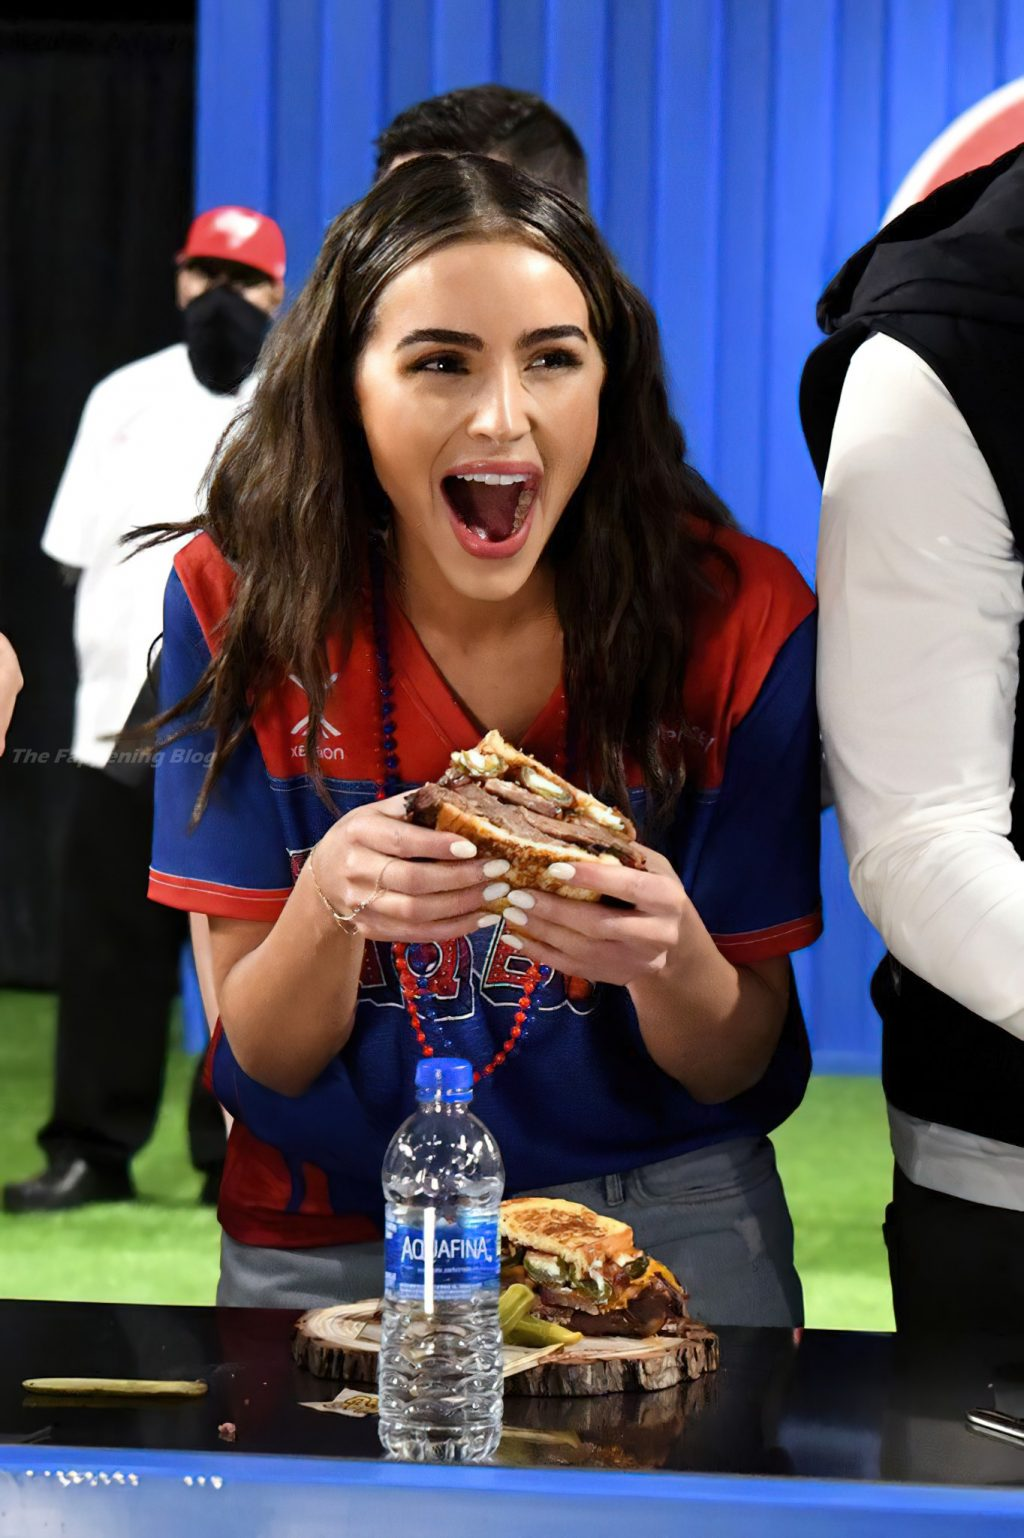 Olivia Culpo Looks Sexy at the Super Bowl Event in Tampa (15 Photos)